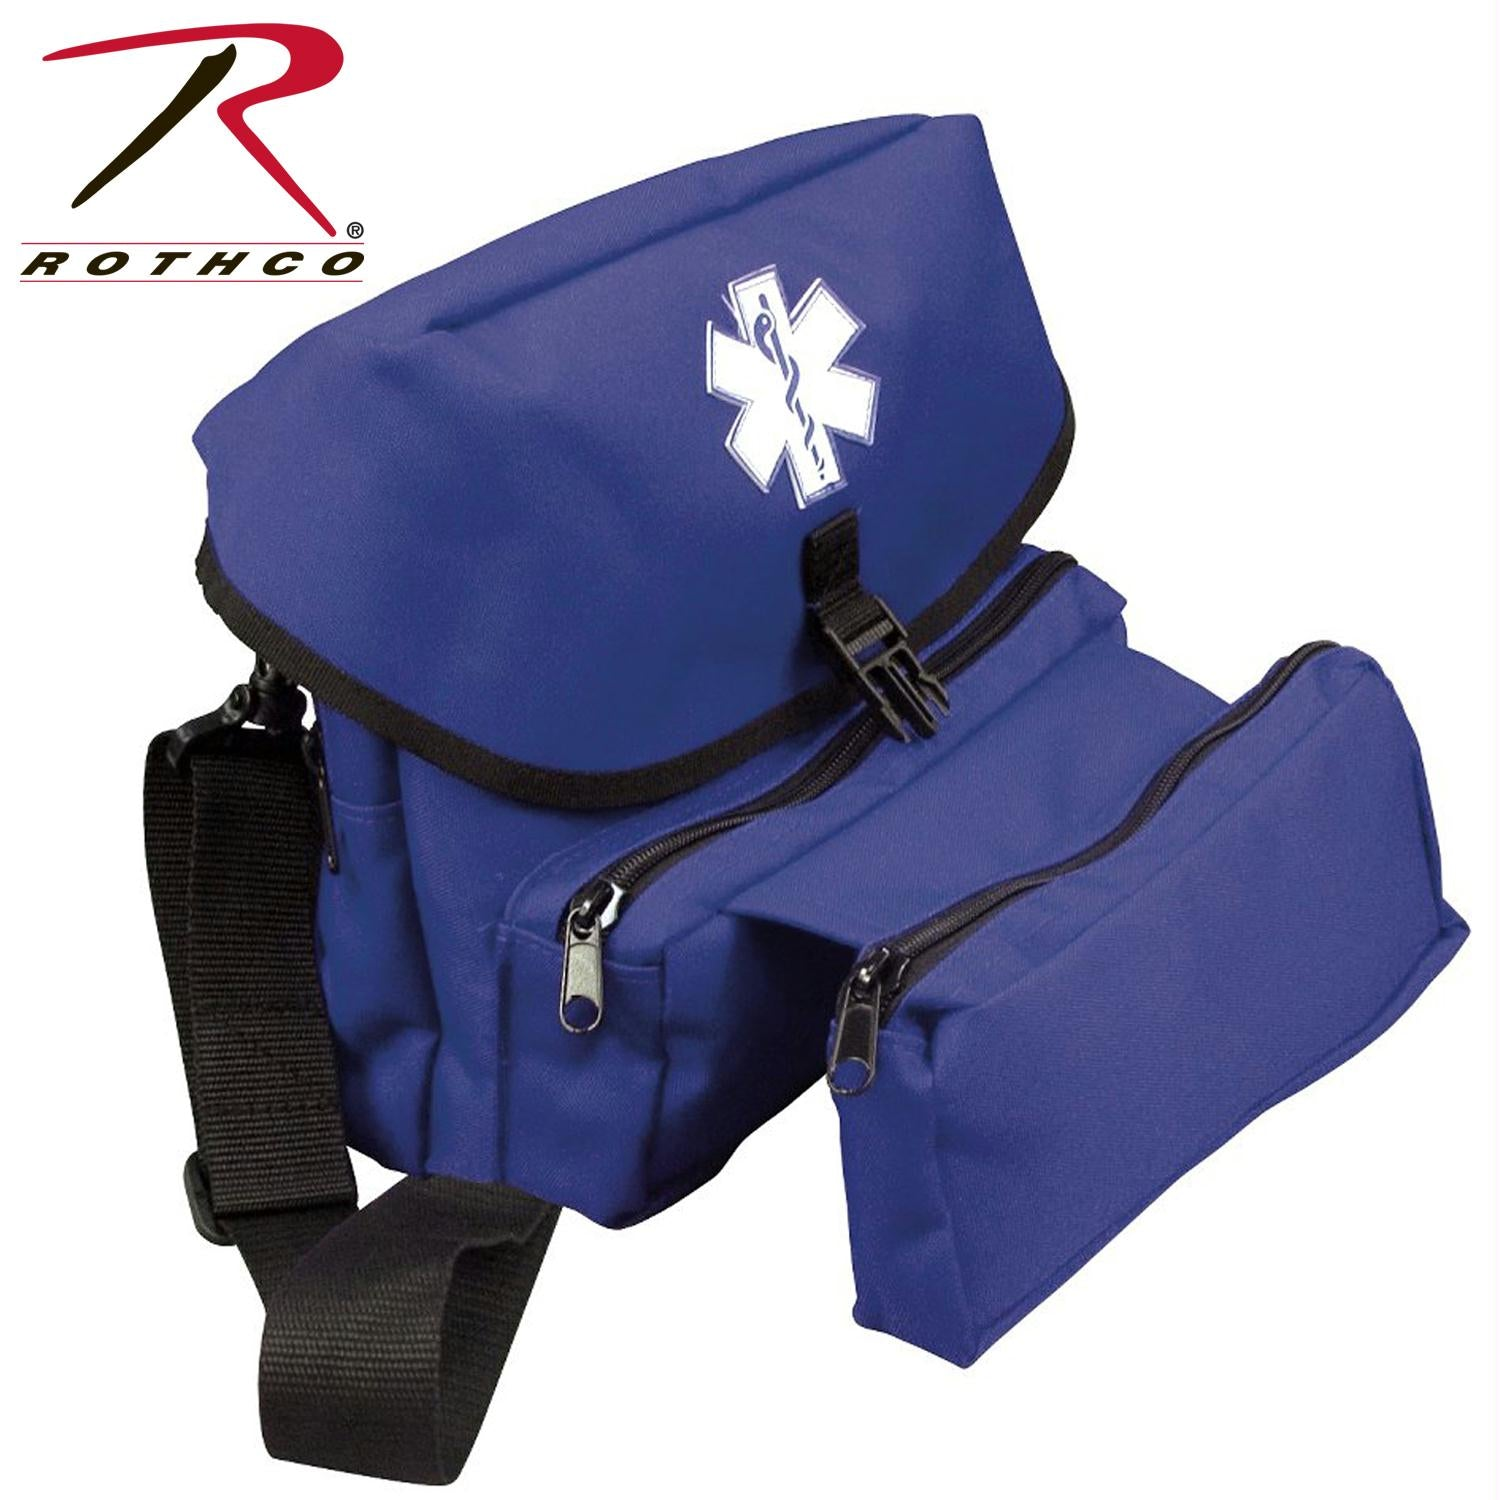 Rothco EMS Medical Field Kit - Blue